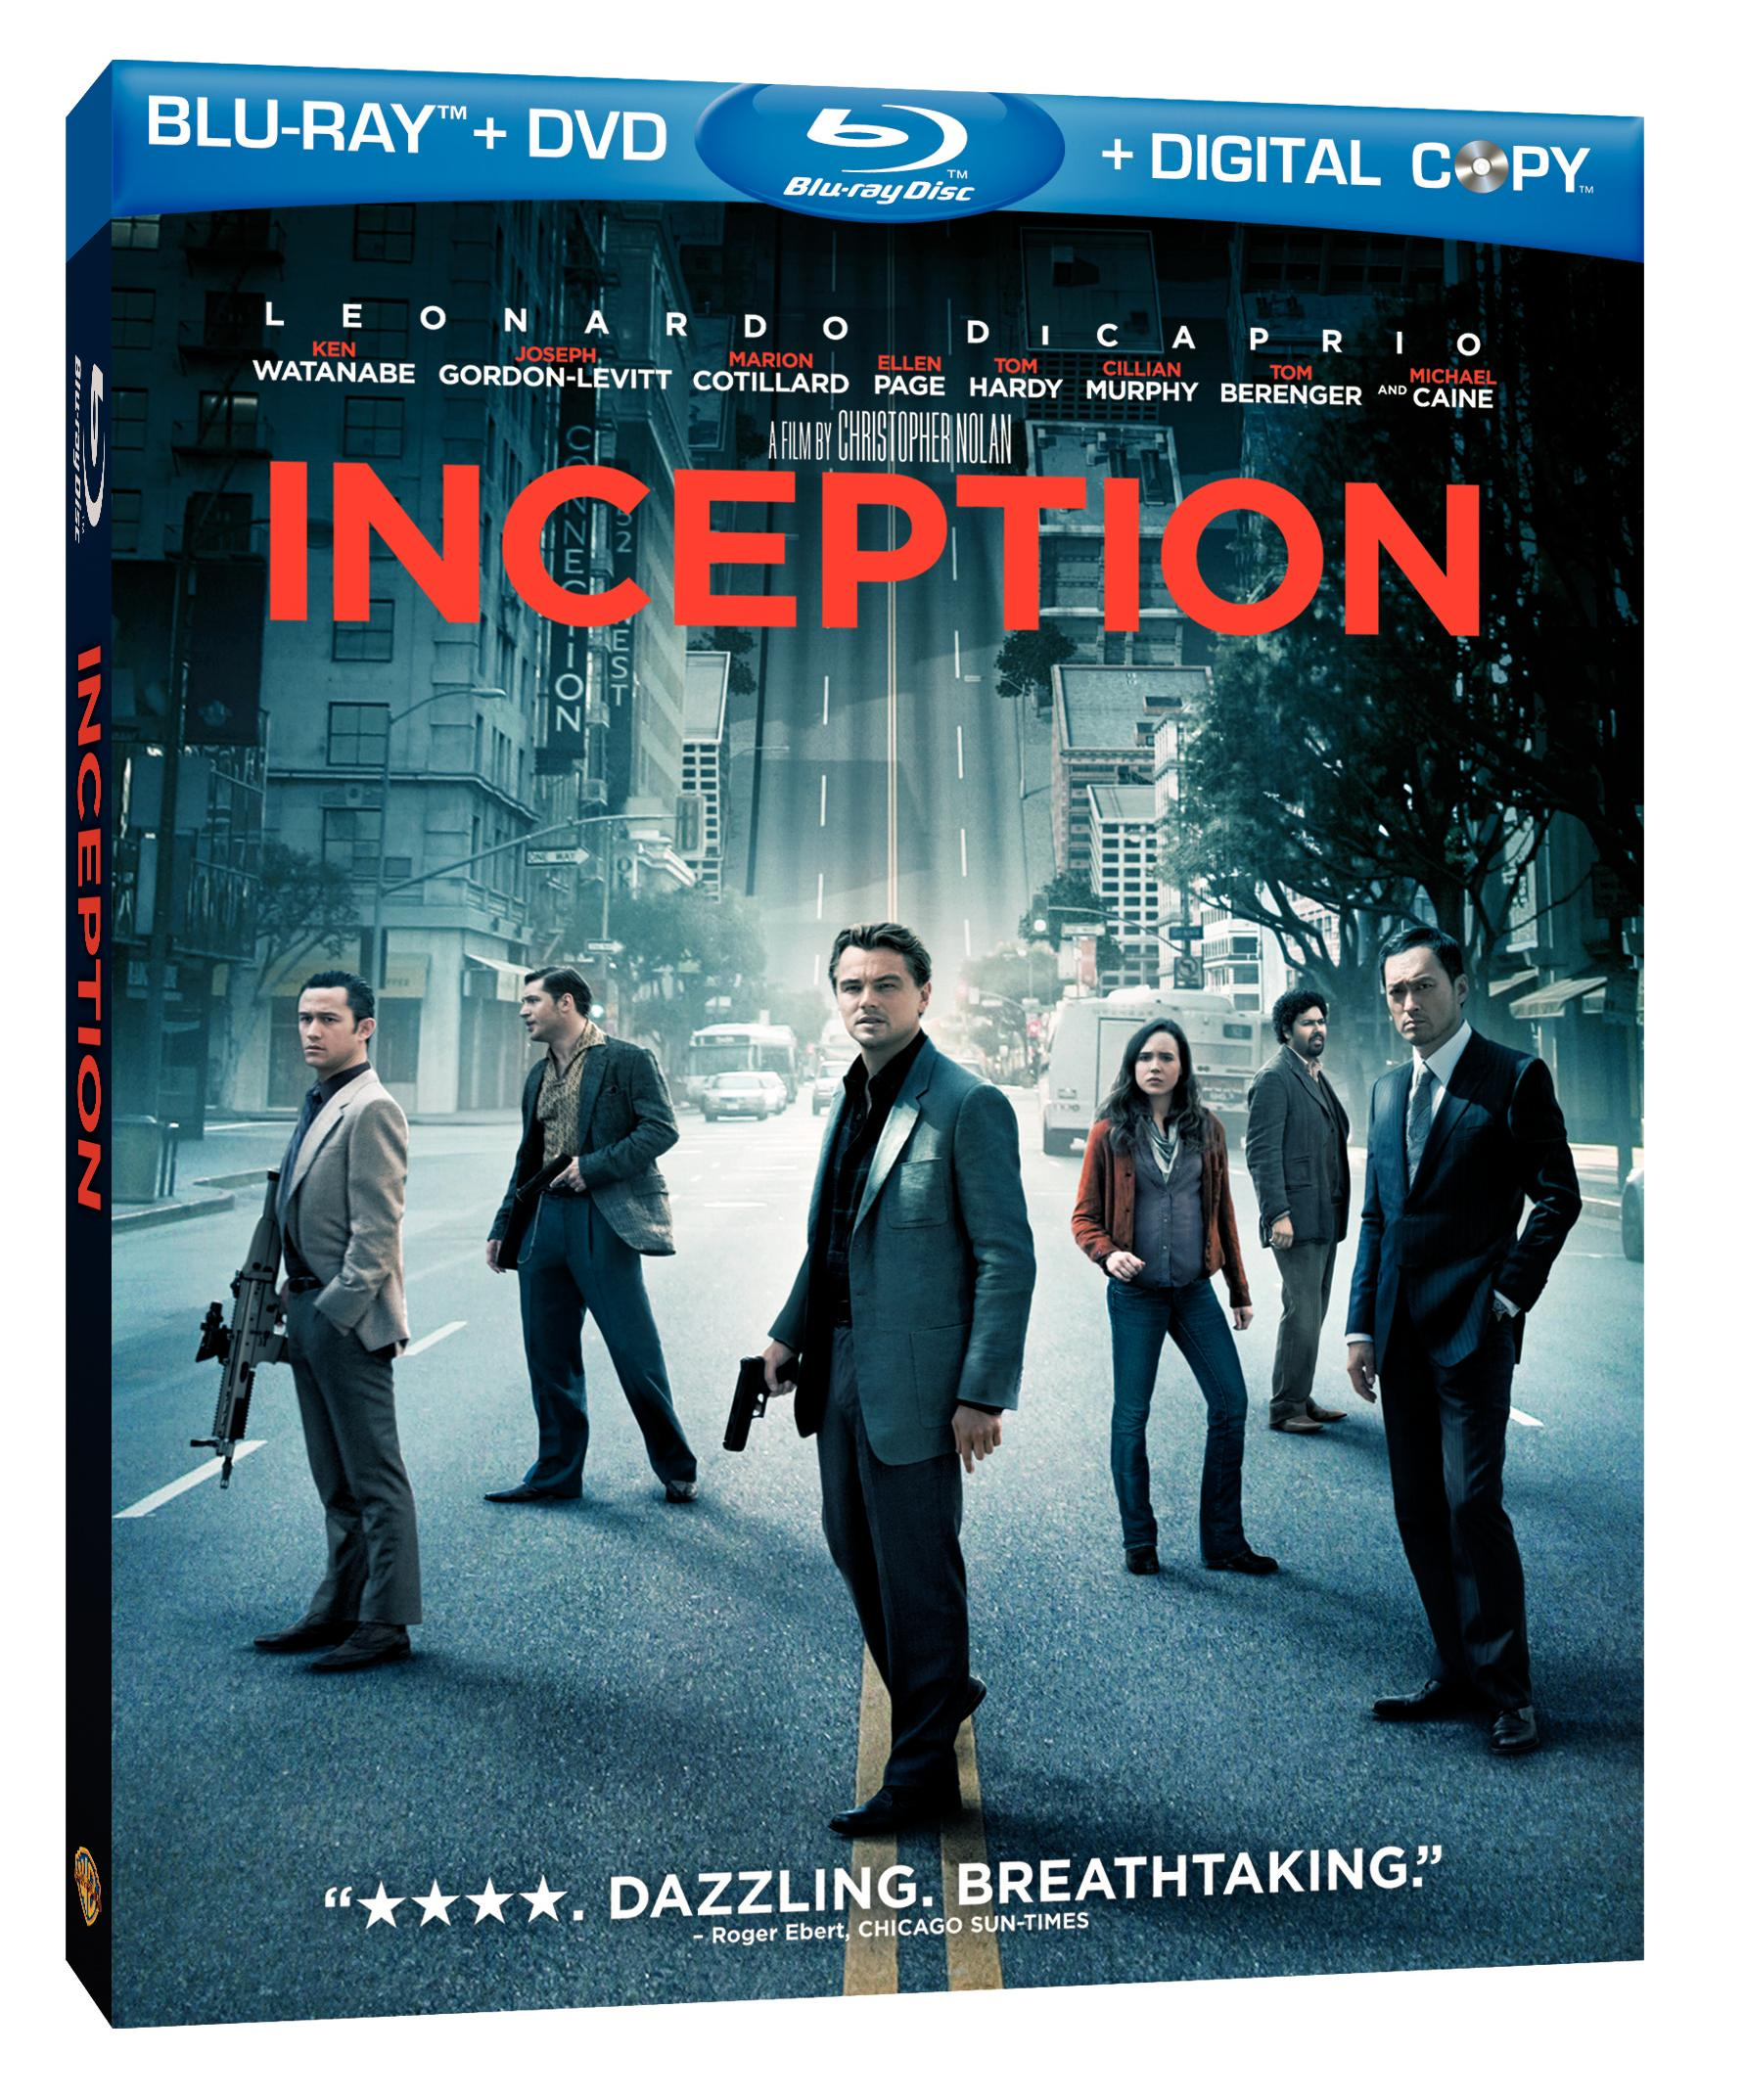 Extraction Mode How Inception On Blu Ray Delivers Its Kick Chrisreedfilm